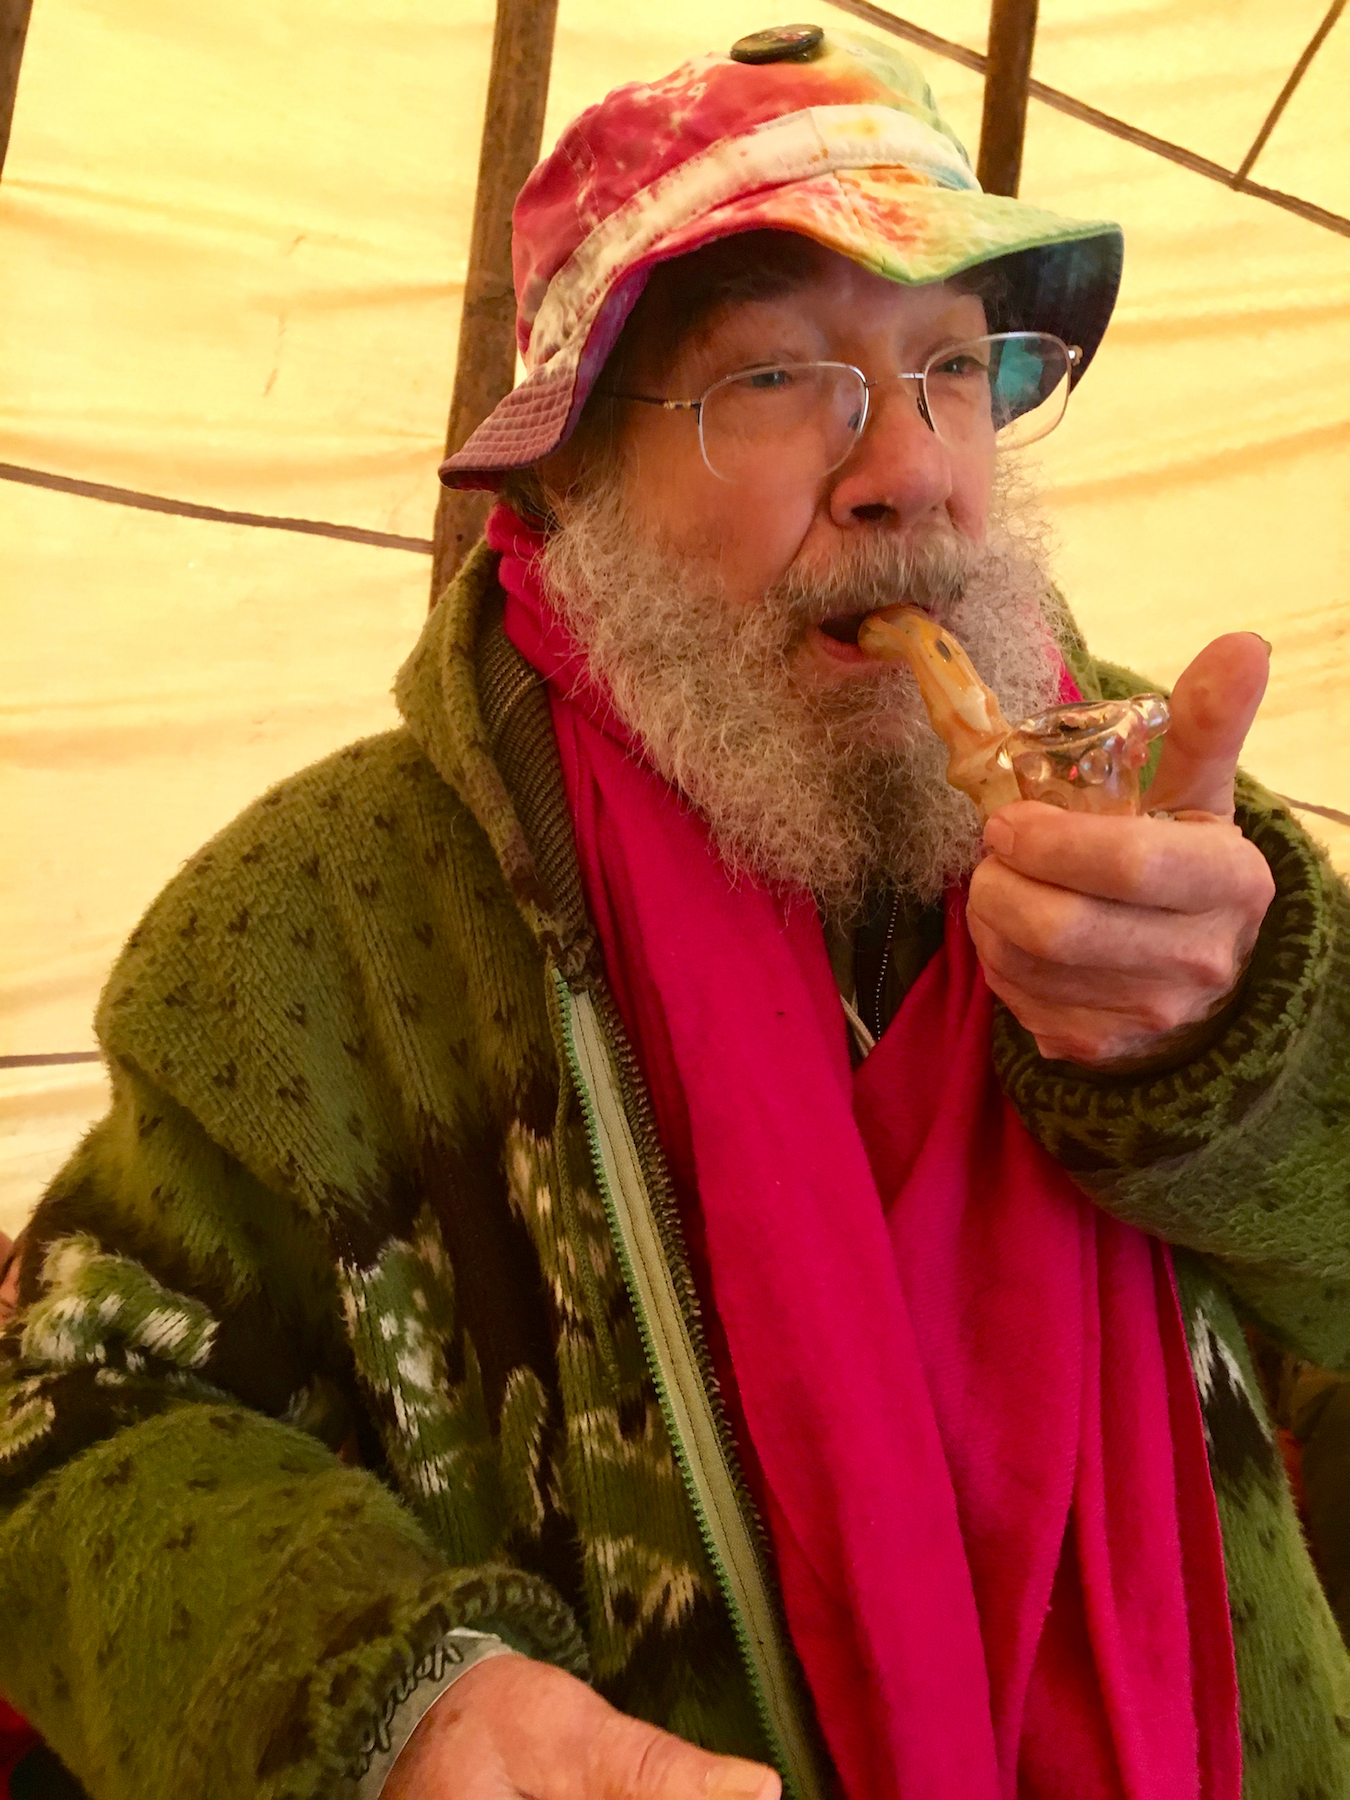 Borosilicate glass pipe pioneer Bob Snodgrass hits a piece made by his son in the Dragonfly Earth Medicine Tent Sunday. (David Downs/Leafly)